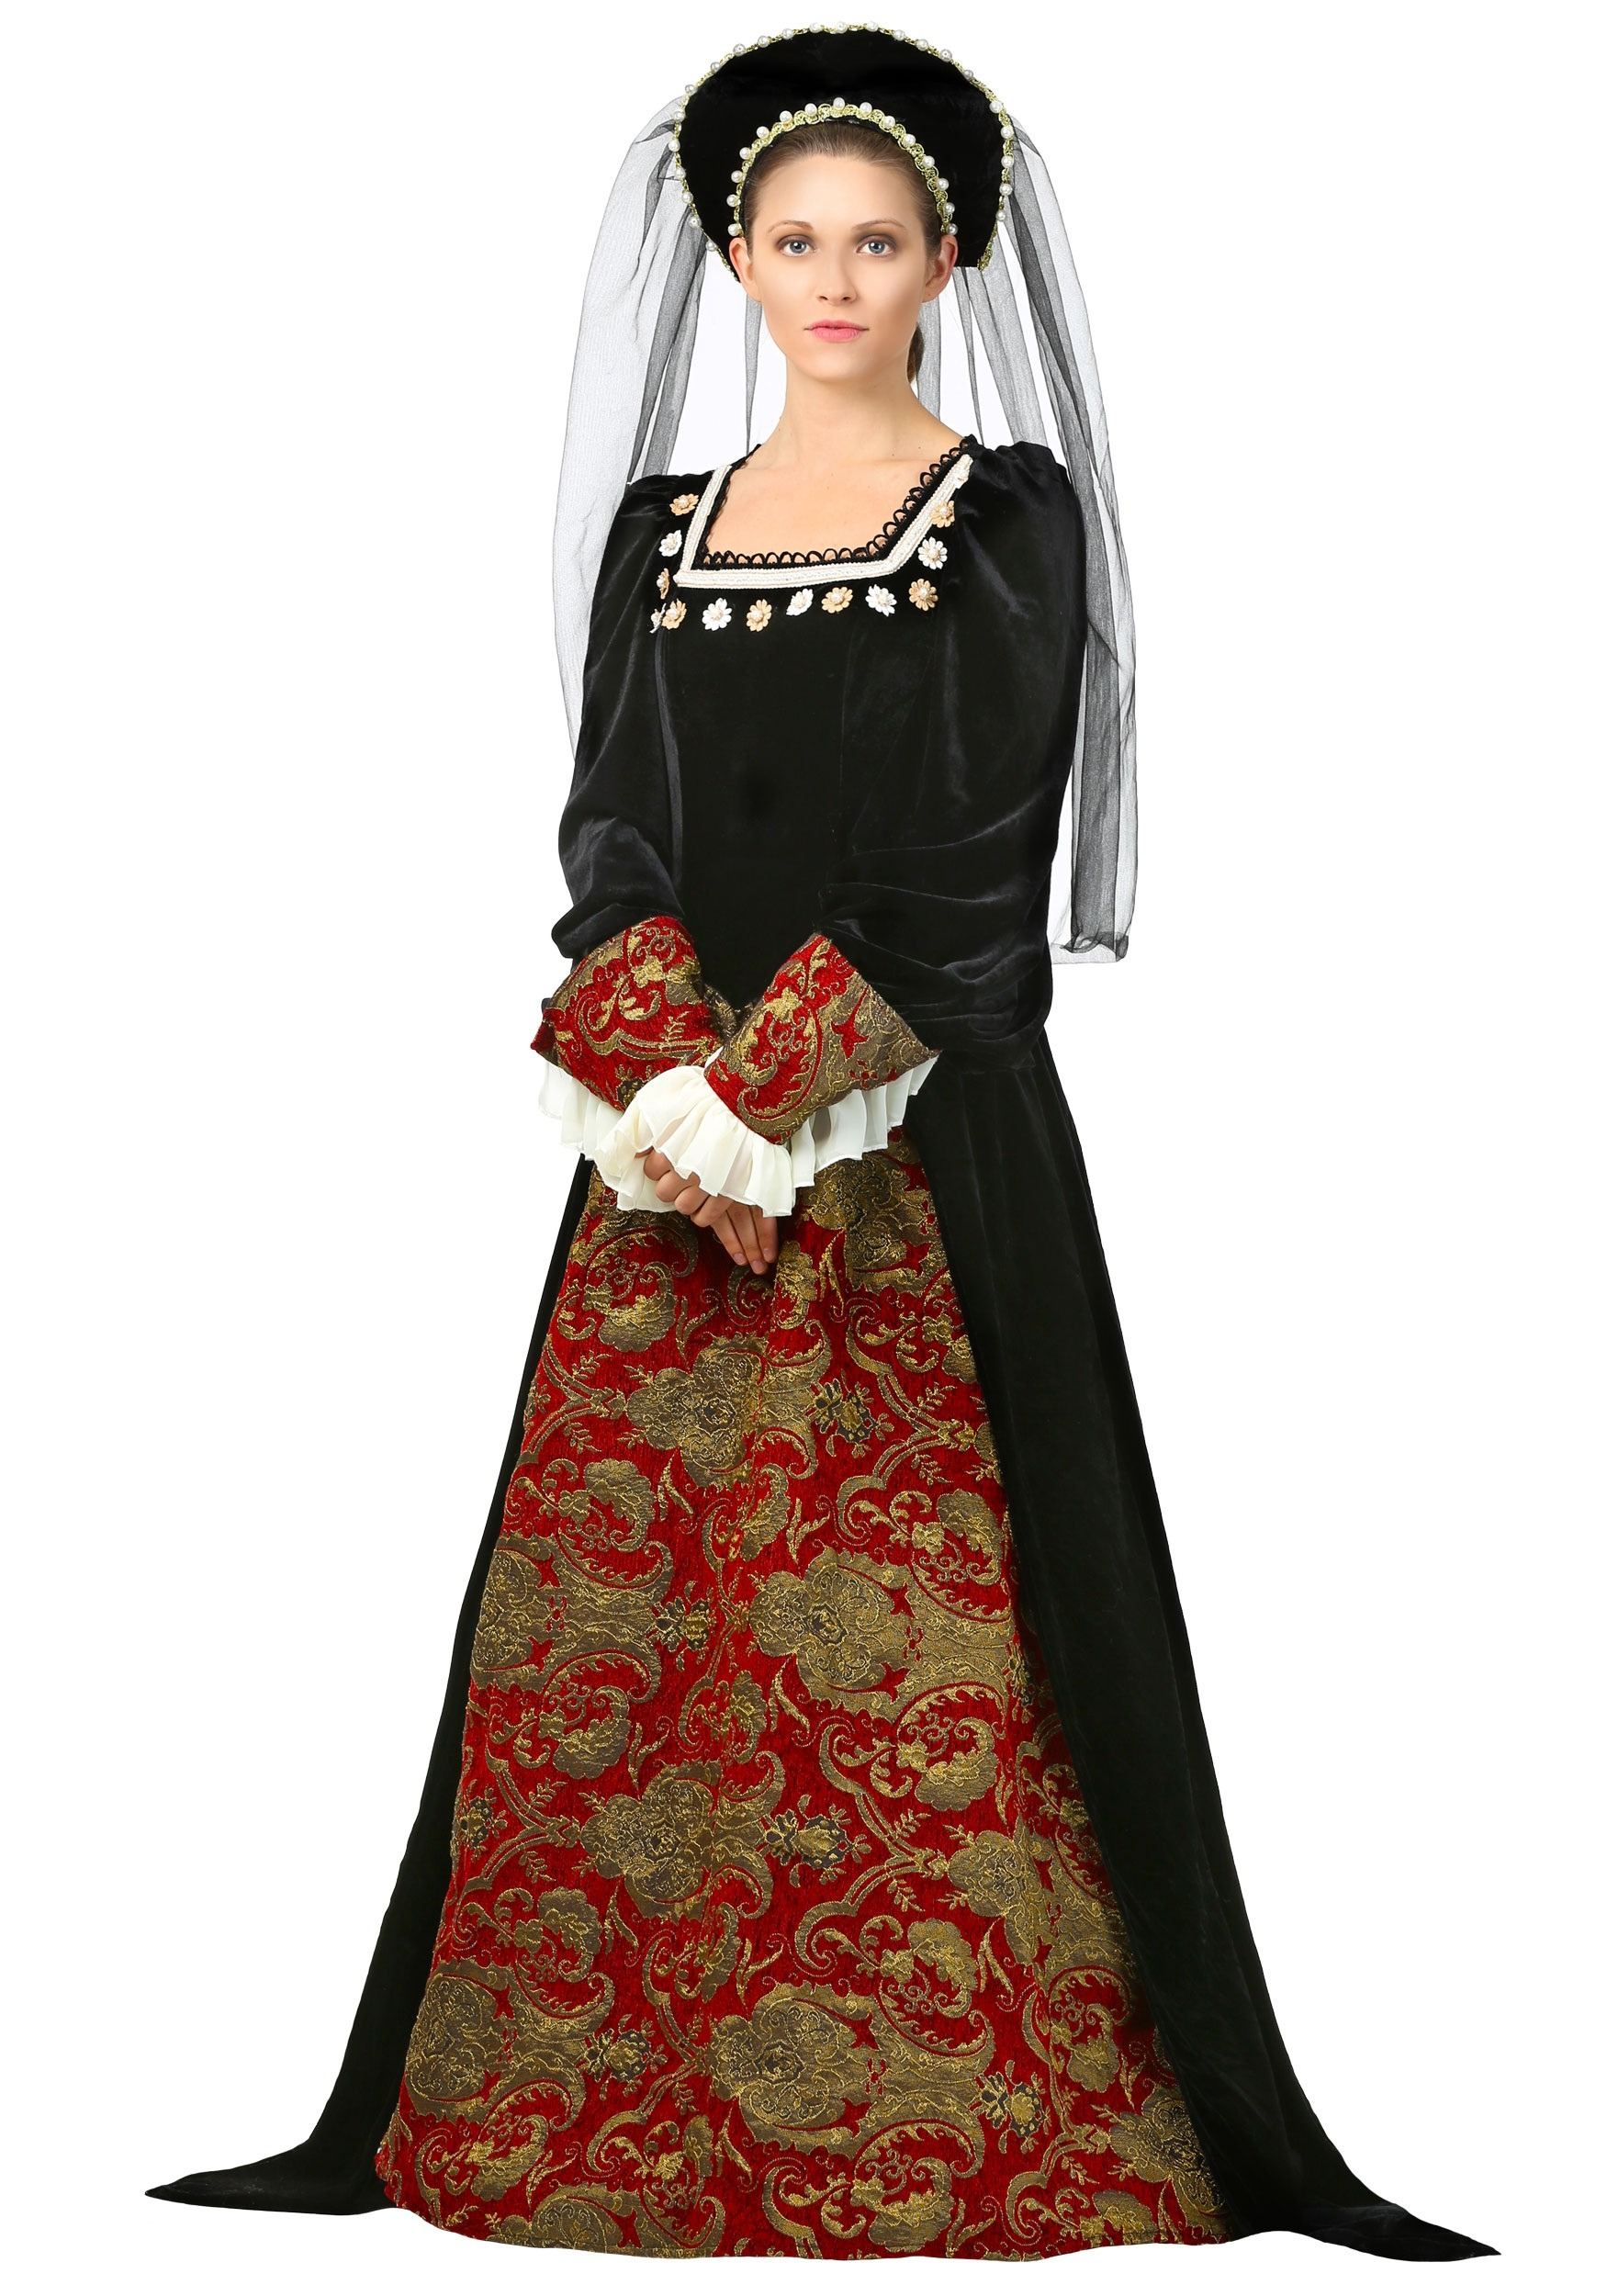 Historical costumes adult kids historical halloween costumes womens anne boleyn costume solutioingenieria Image collections